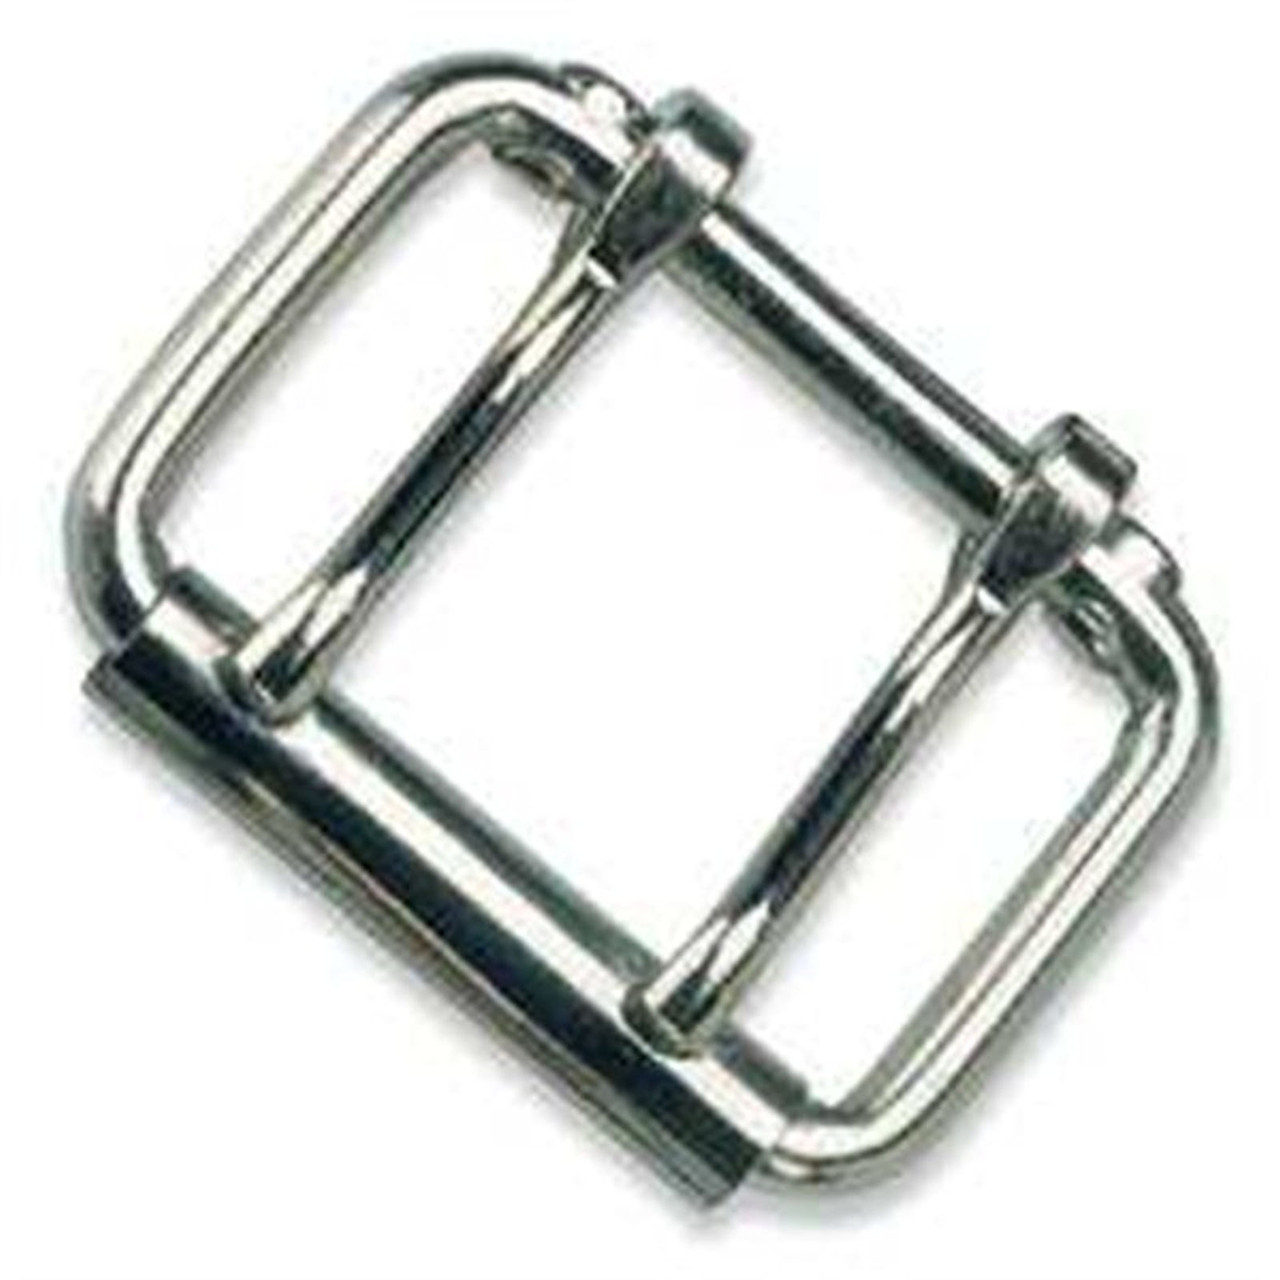 Nickel Free Double Prong Square Roller Belt Buckle 1 1//2 38 mm